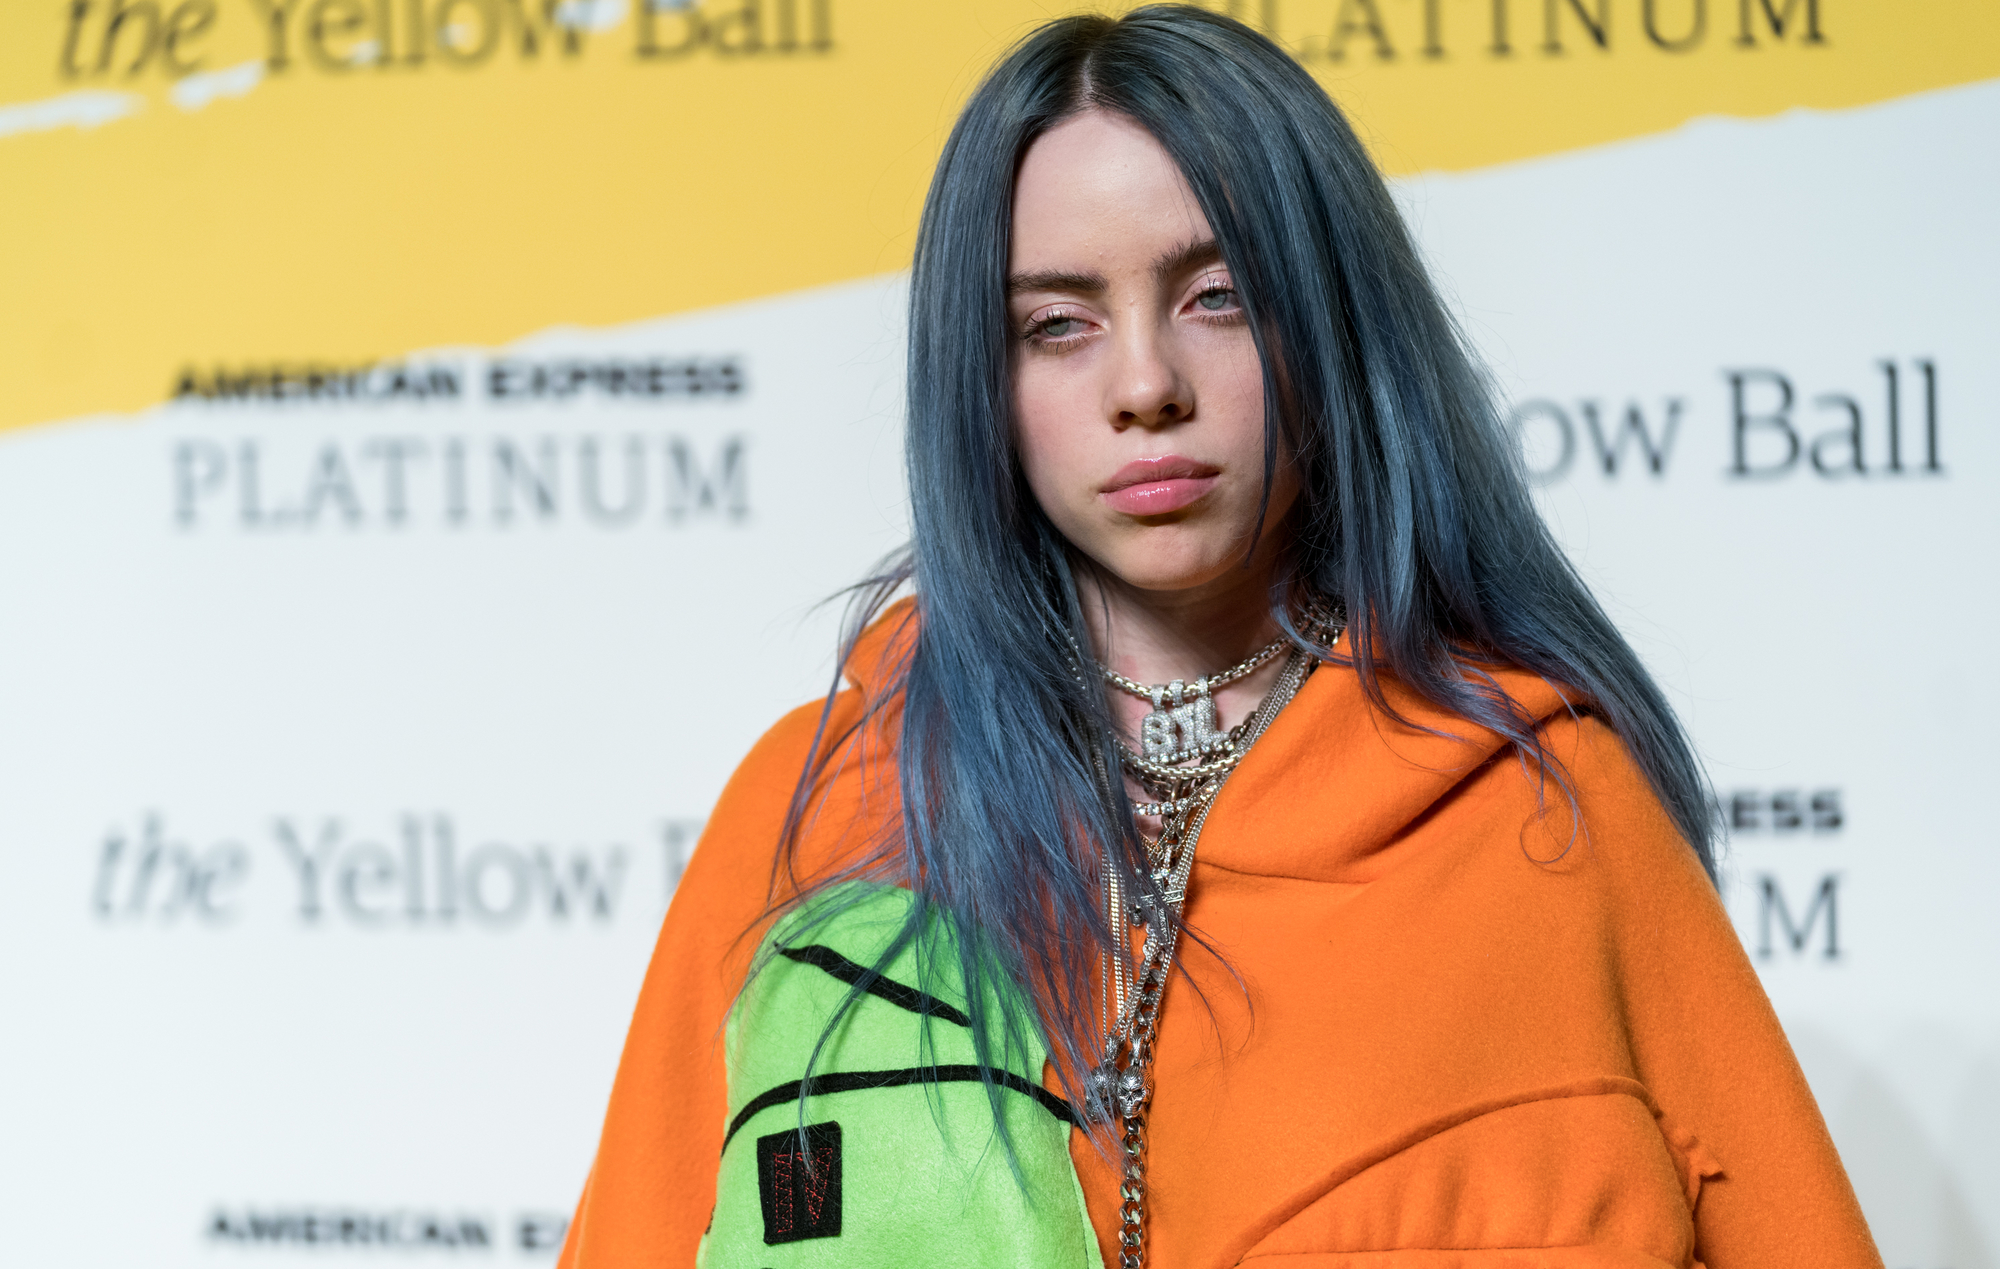 Billie Eilish Unveils New Graffiti Inspired Clothing Line With Freak City